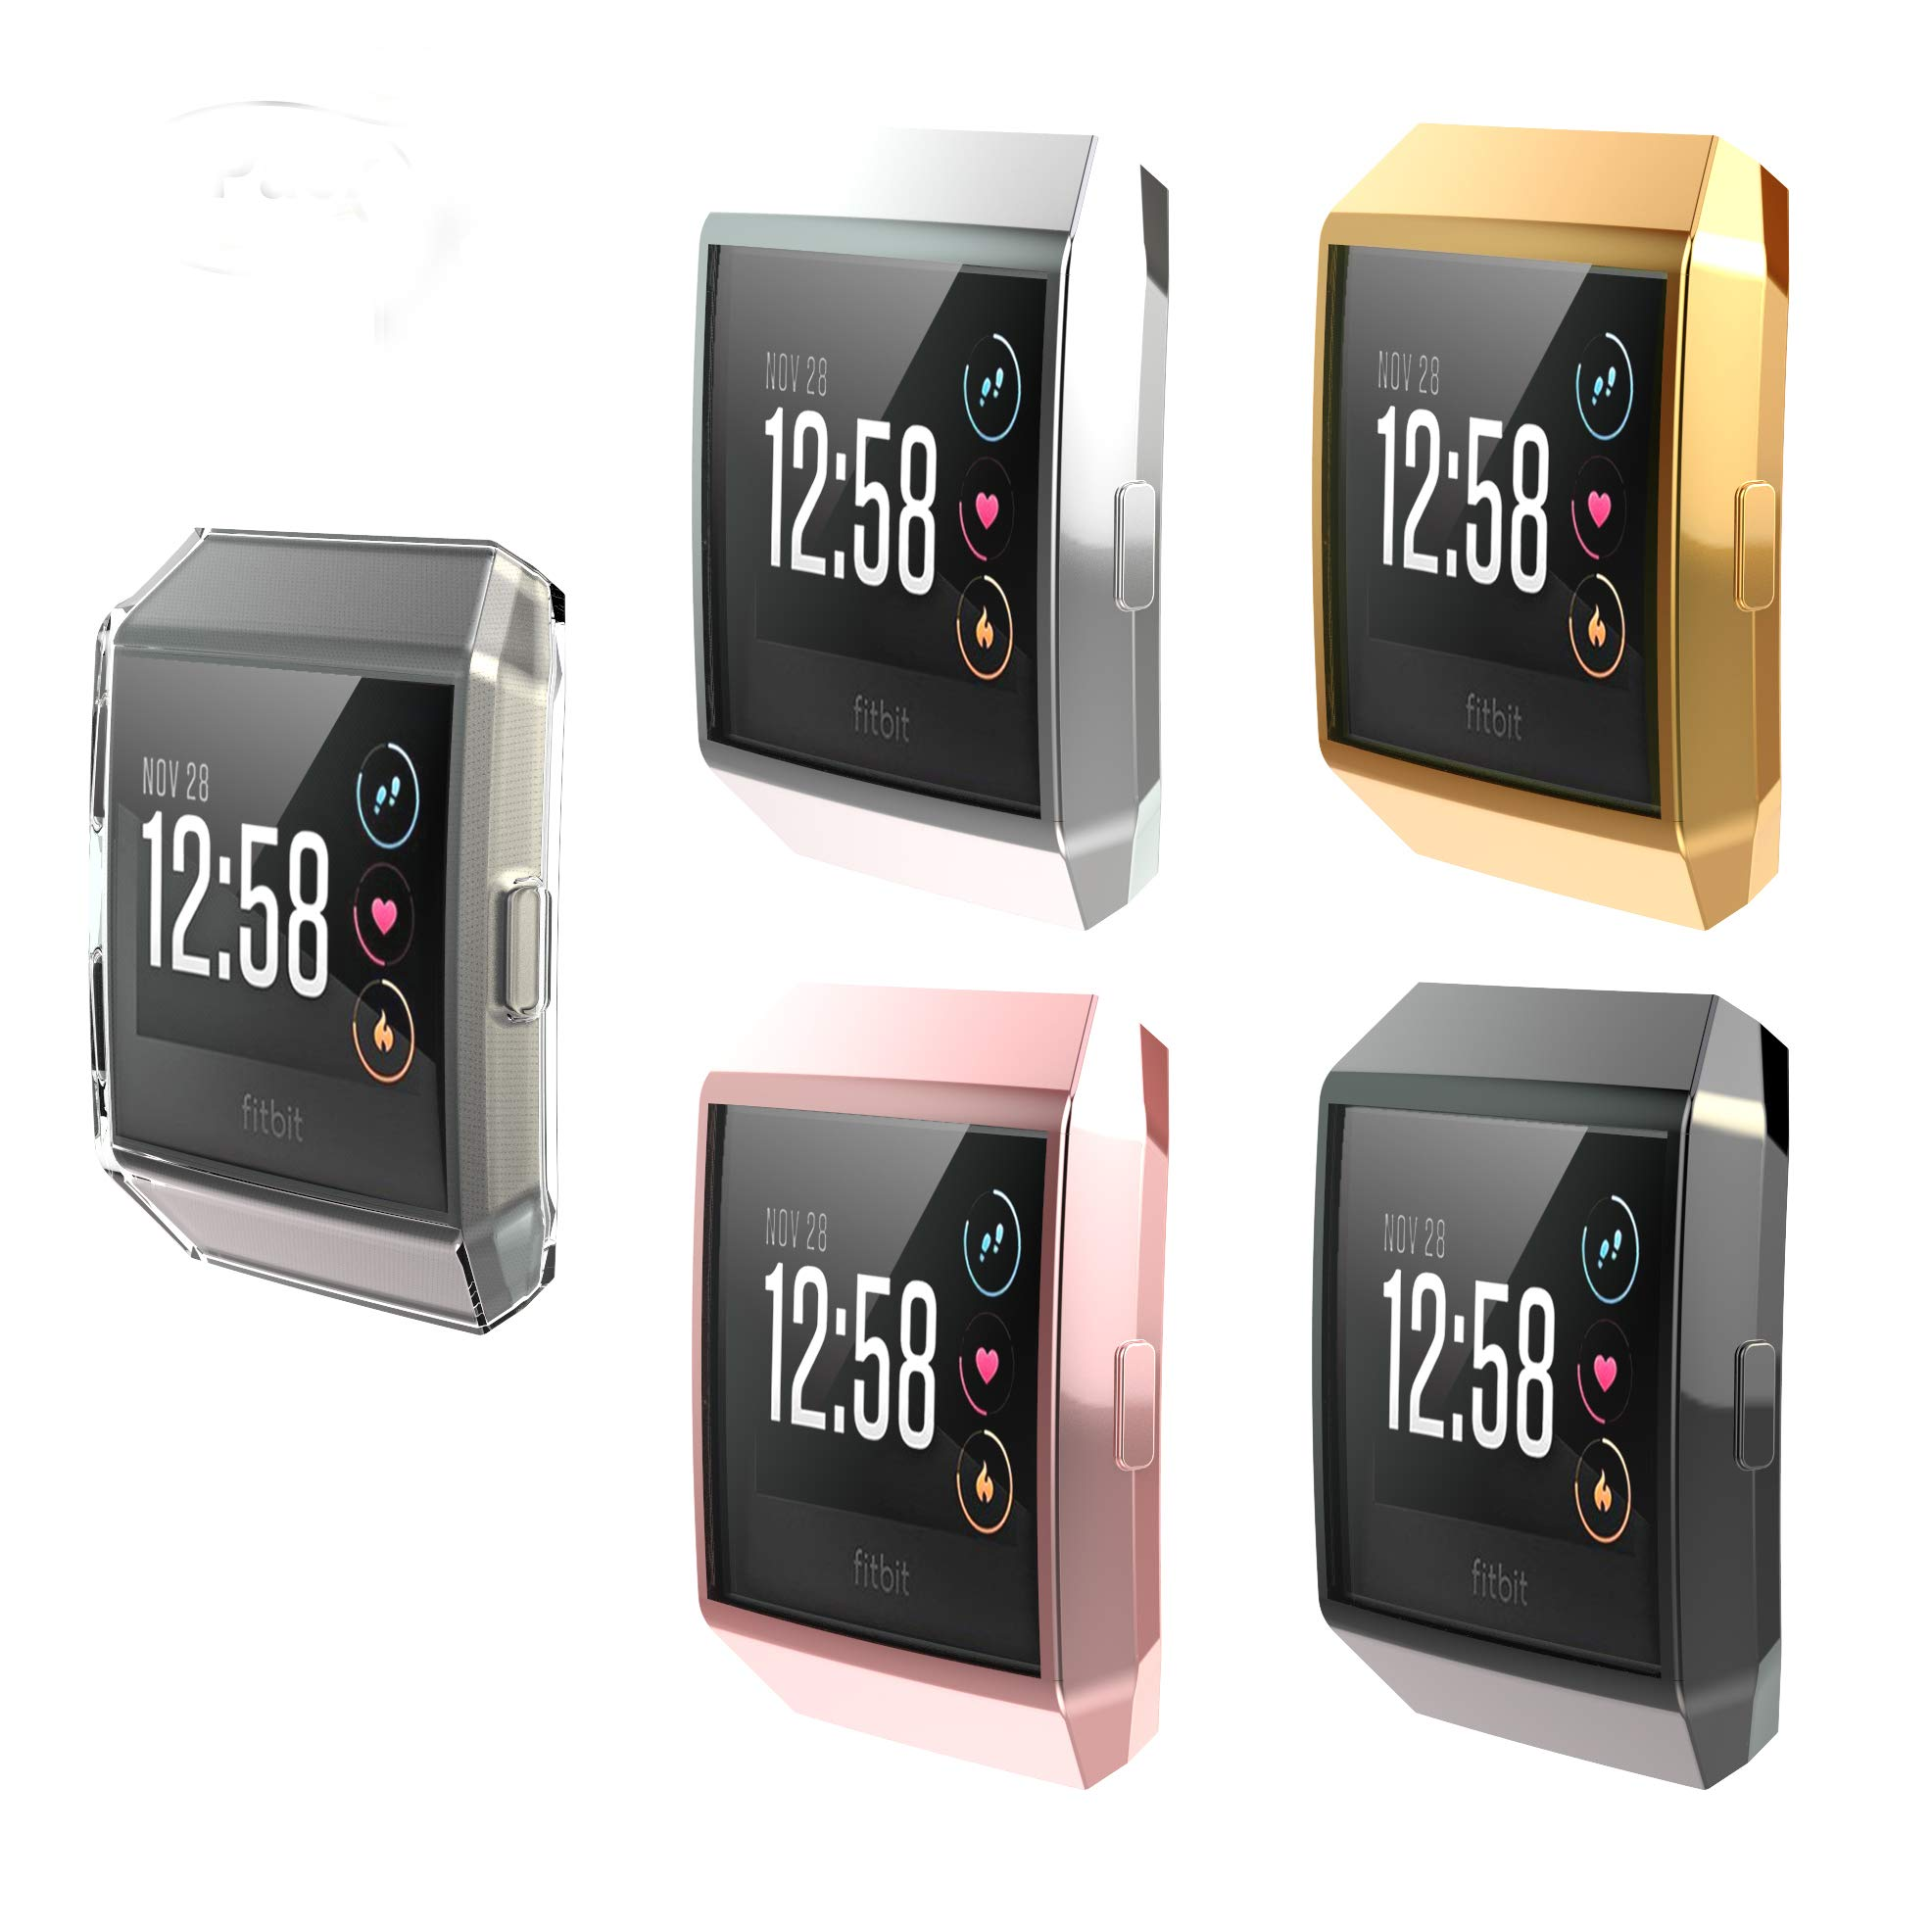 [5-Pack] Fitbit Ionic Screen Protector Case, JZK Scratch-Resistant Flexible Lightweight Plated TPU Fullbody Protective Case for Fitbit Ionic Smart Watch Accessories,Black+Clear+Gold+Pink+Silver by JZK